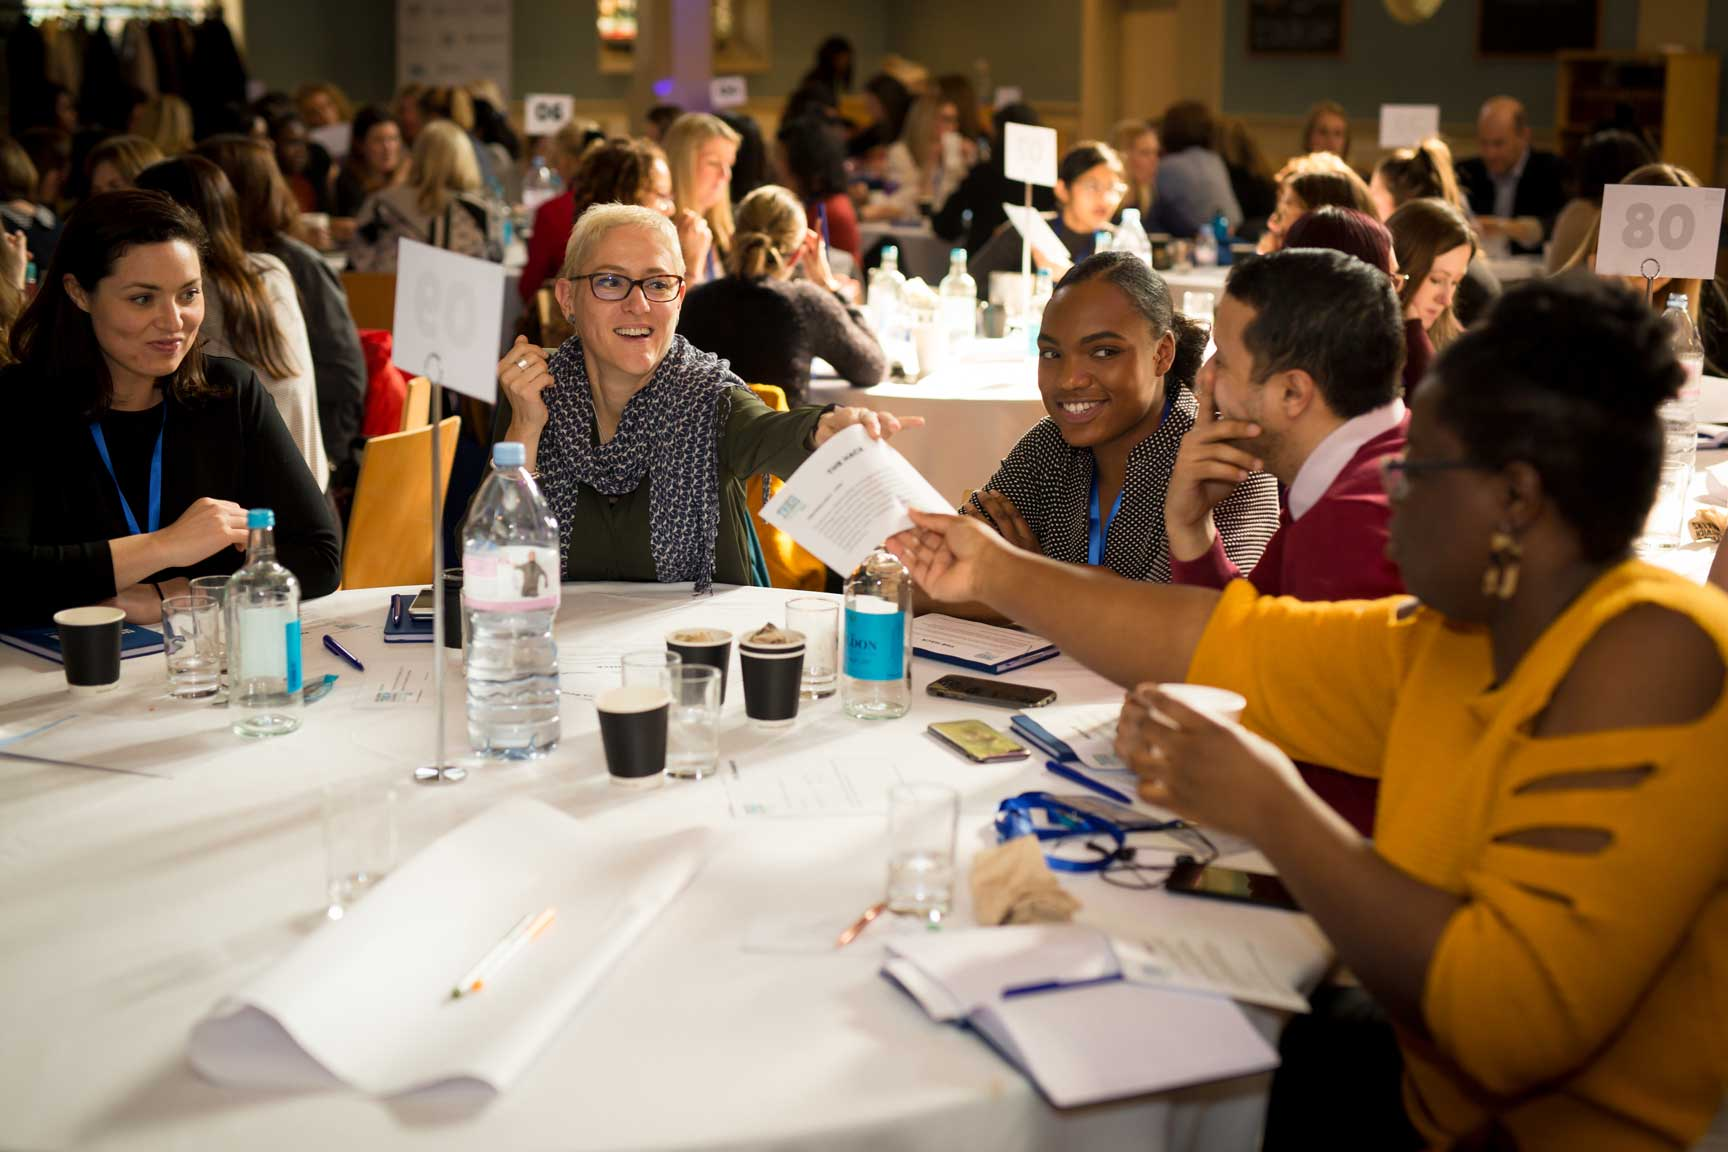 Women talking around round table at conference at Conference with screens and sofa style seating at St Mary's Venue Hire, London